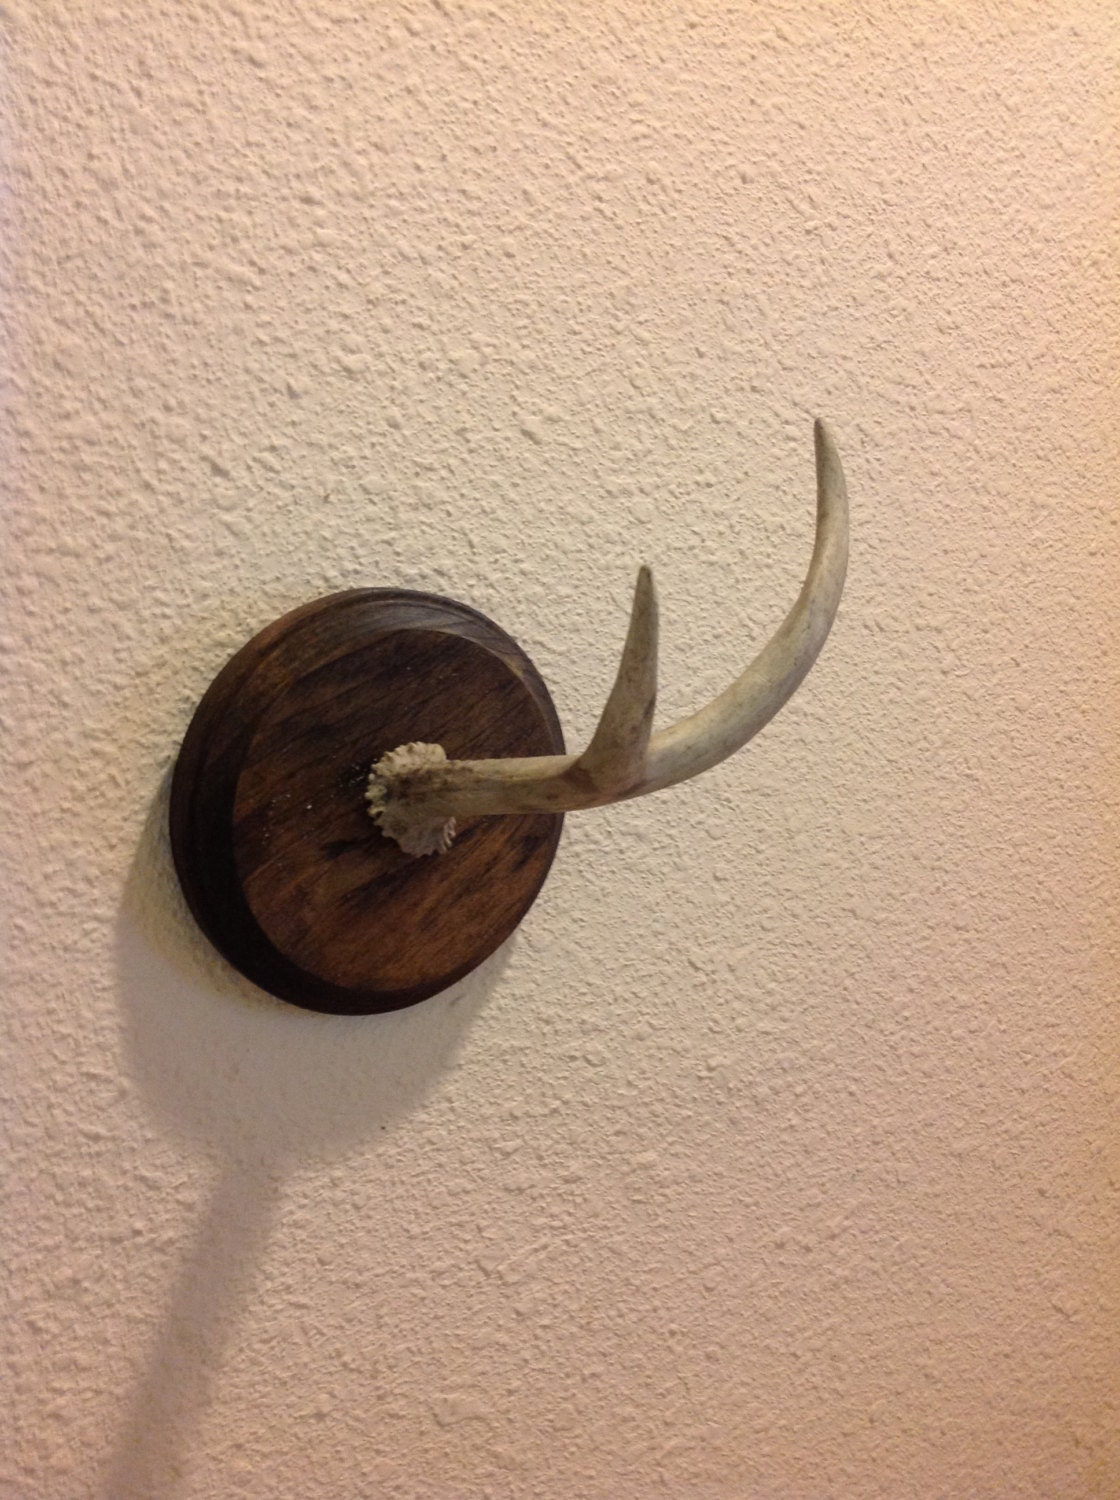 Deer antler jewelry holder key rack by cadaverousanimation on etsy - Antler key rack ...